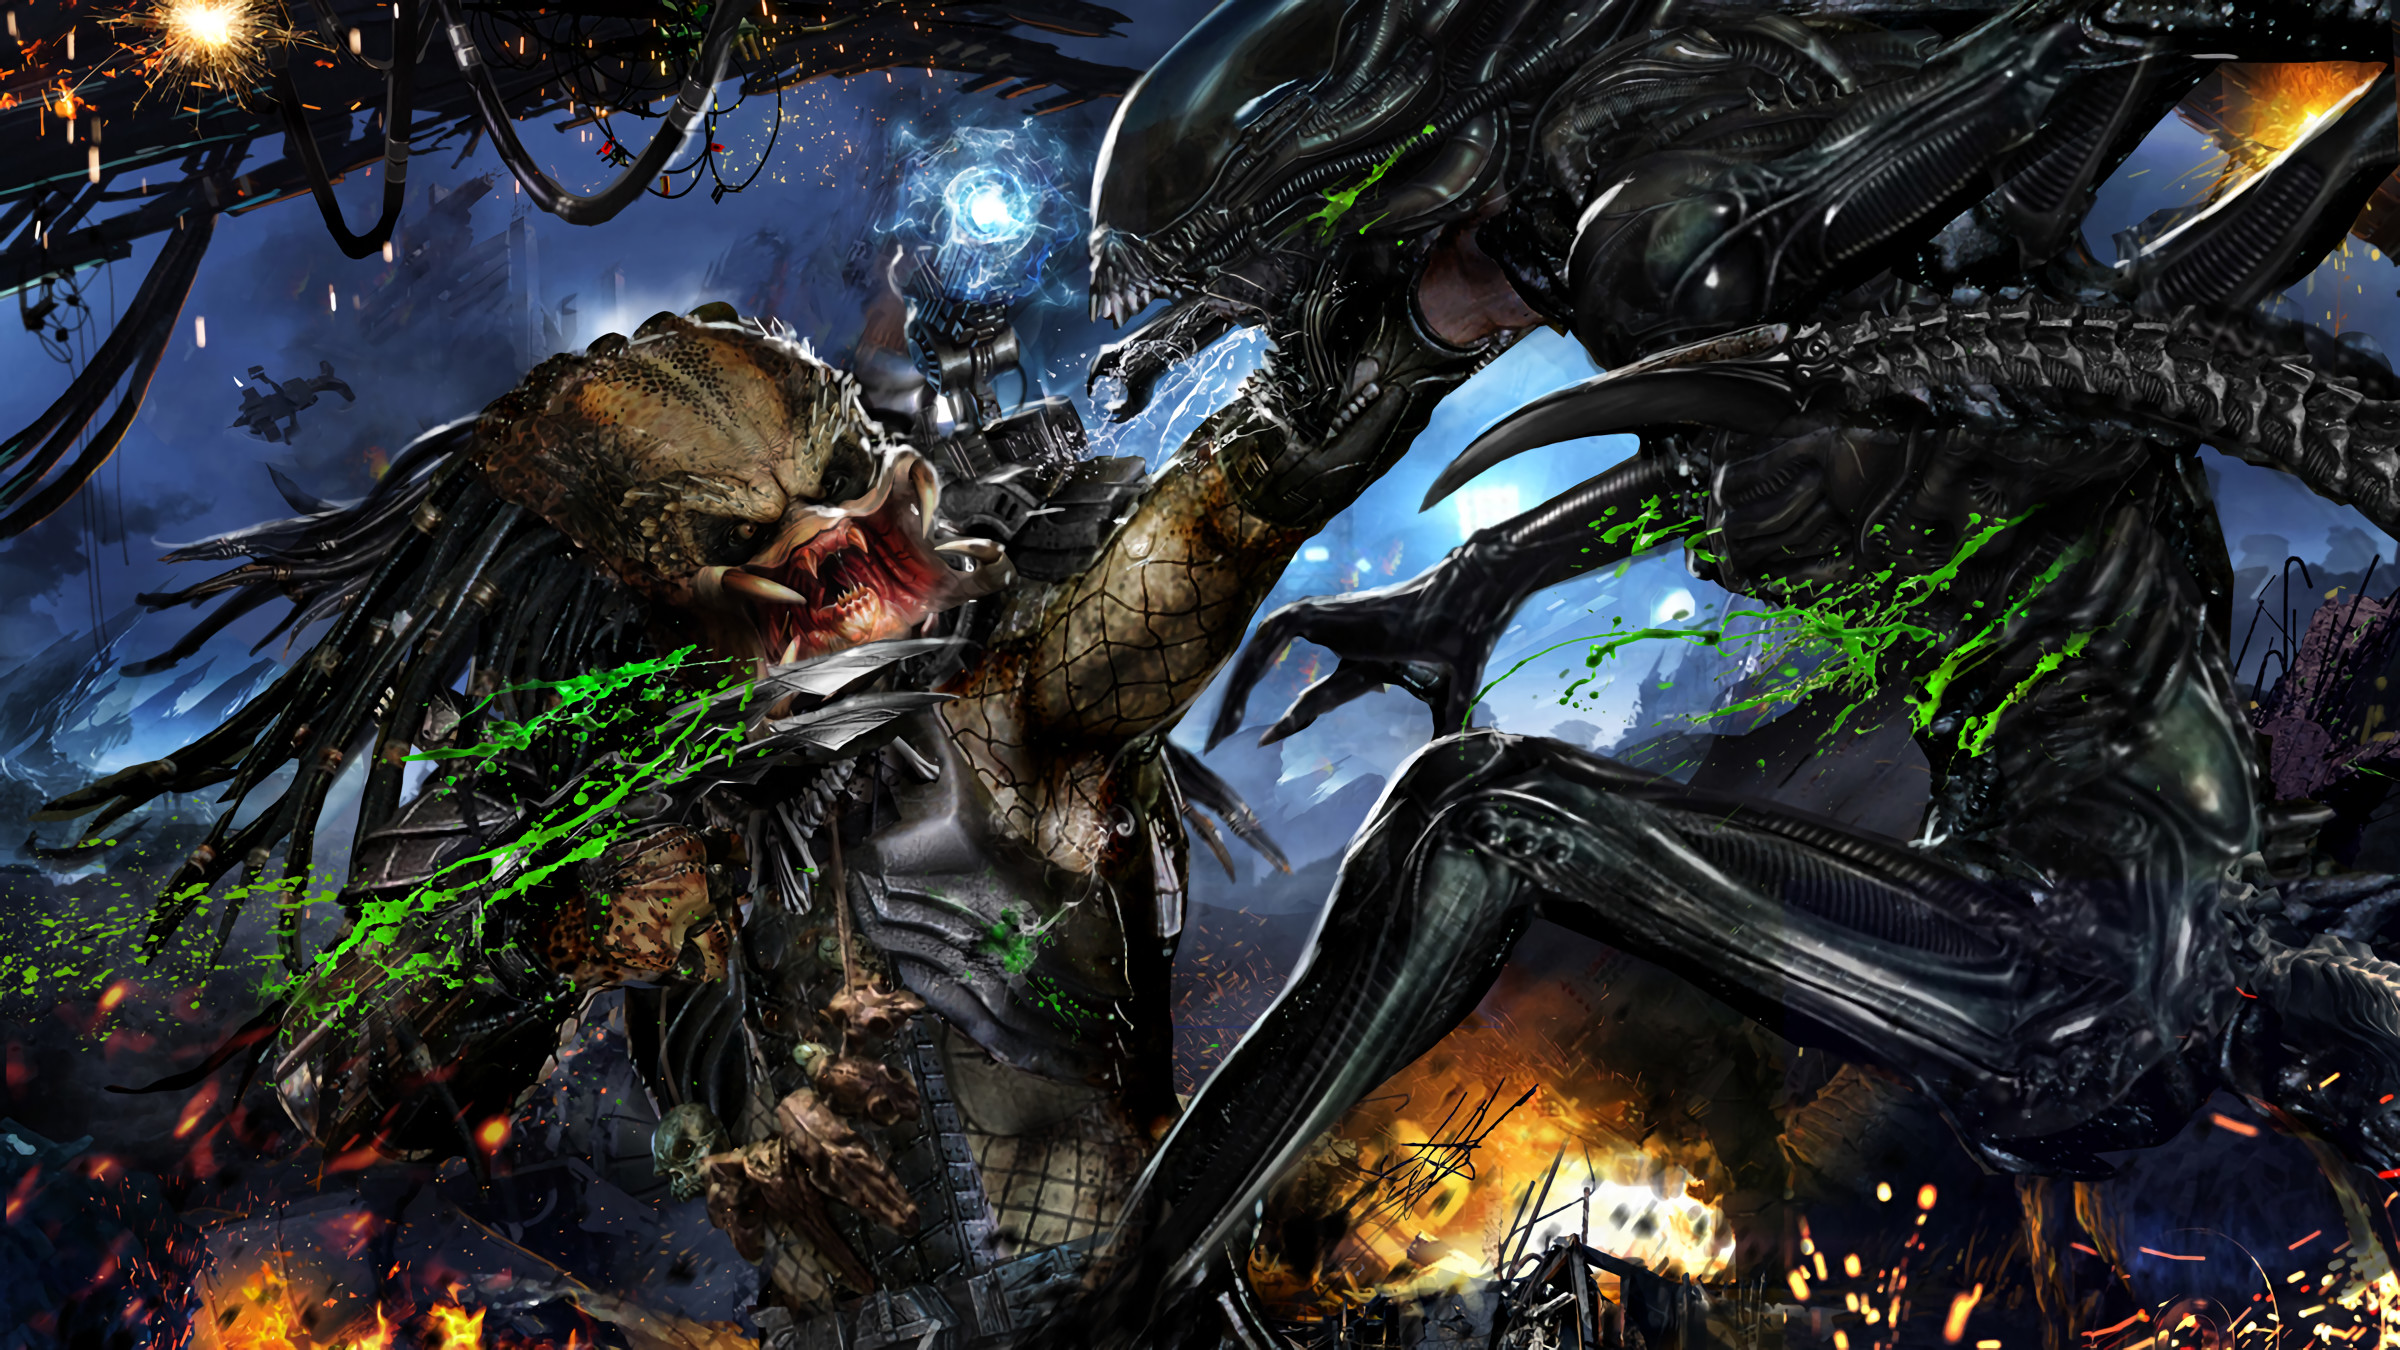 alien vs predator game free download for android